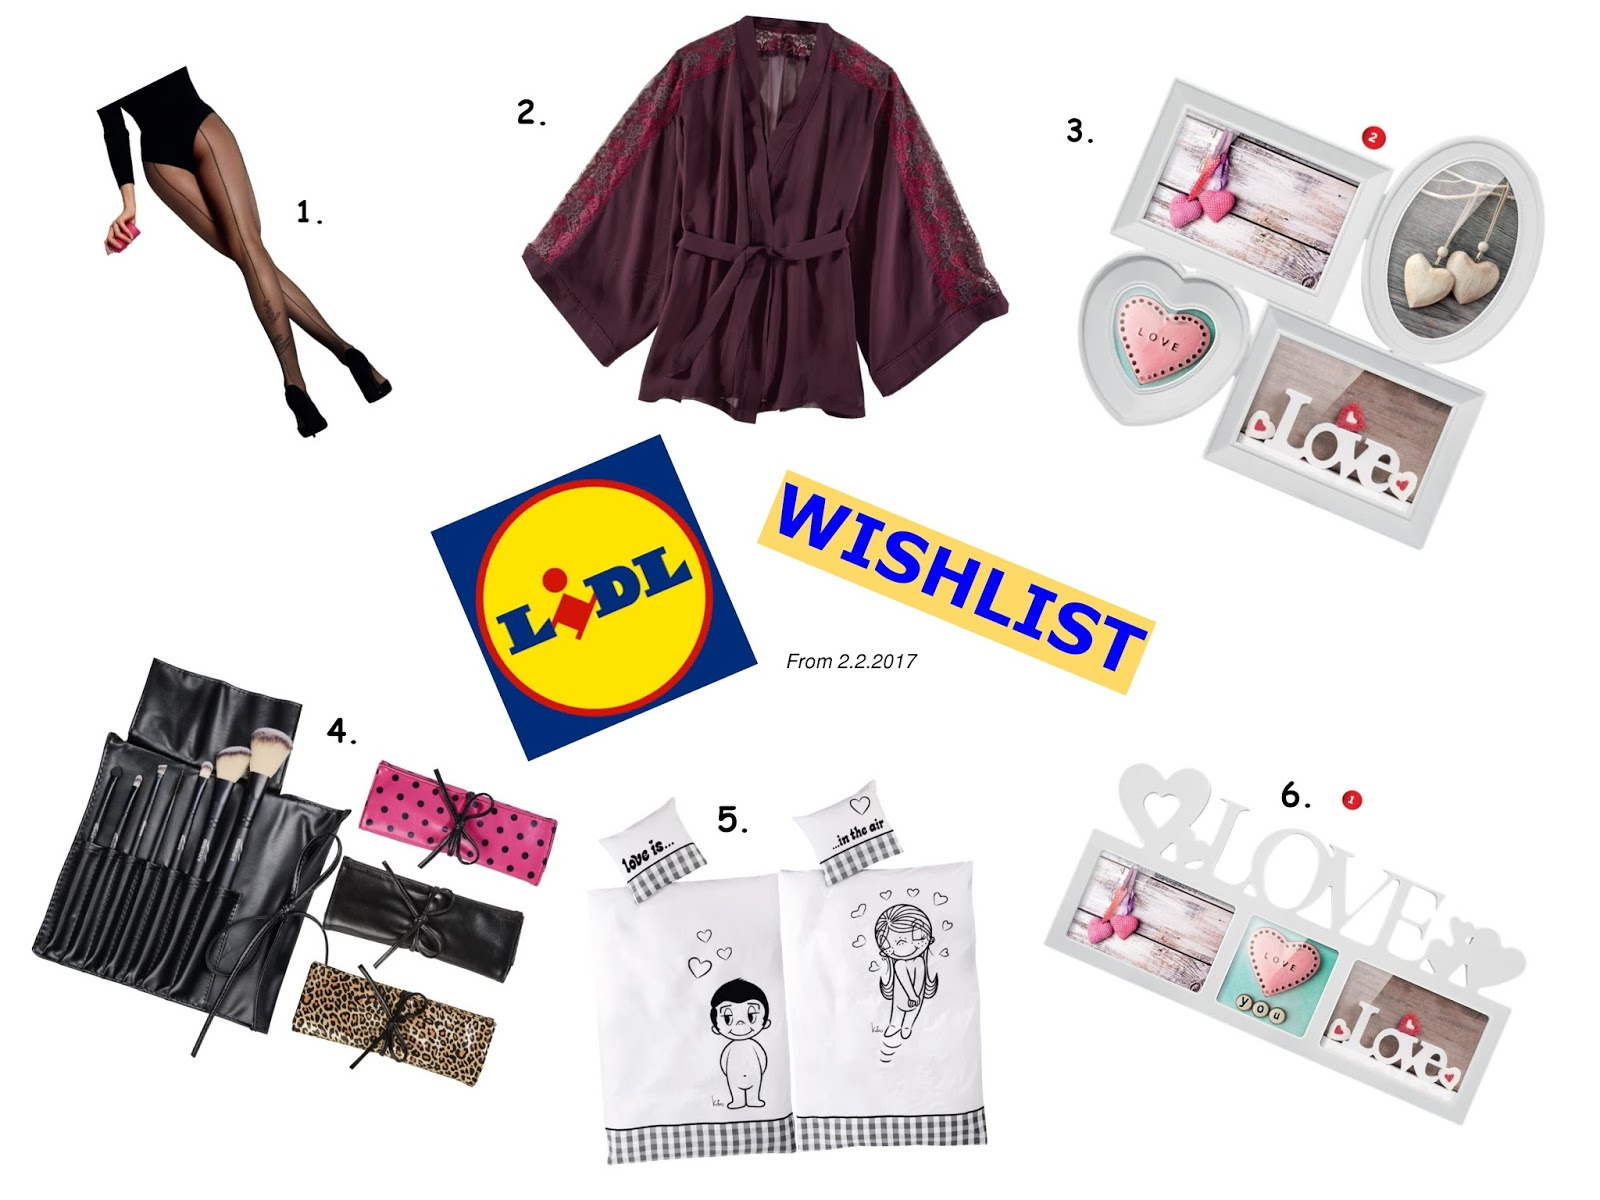 lidl-wishlist-collage-from-2-2-2017